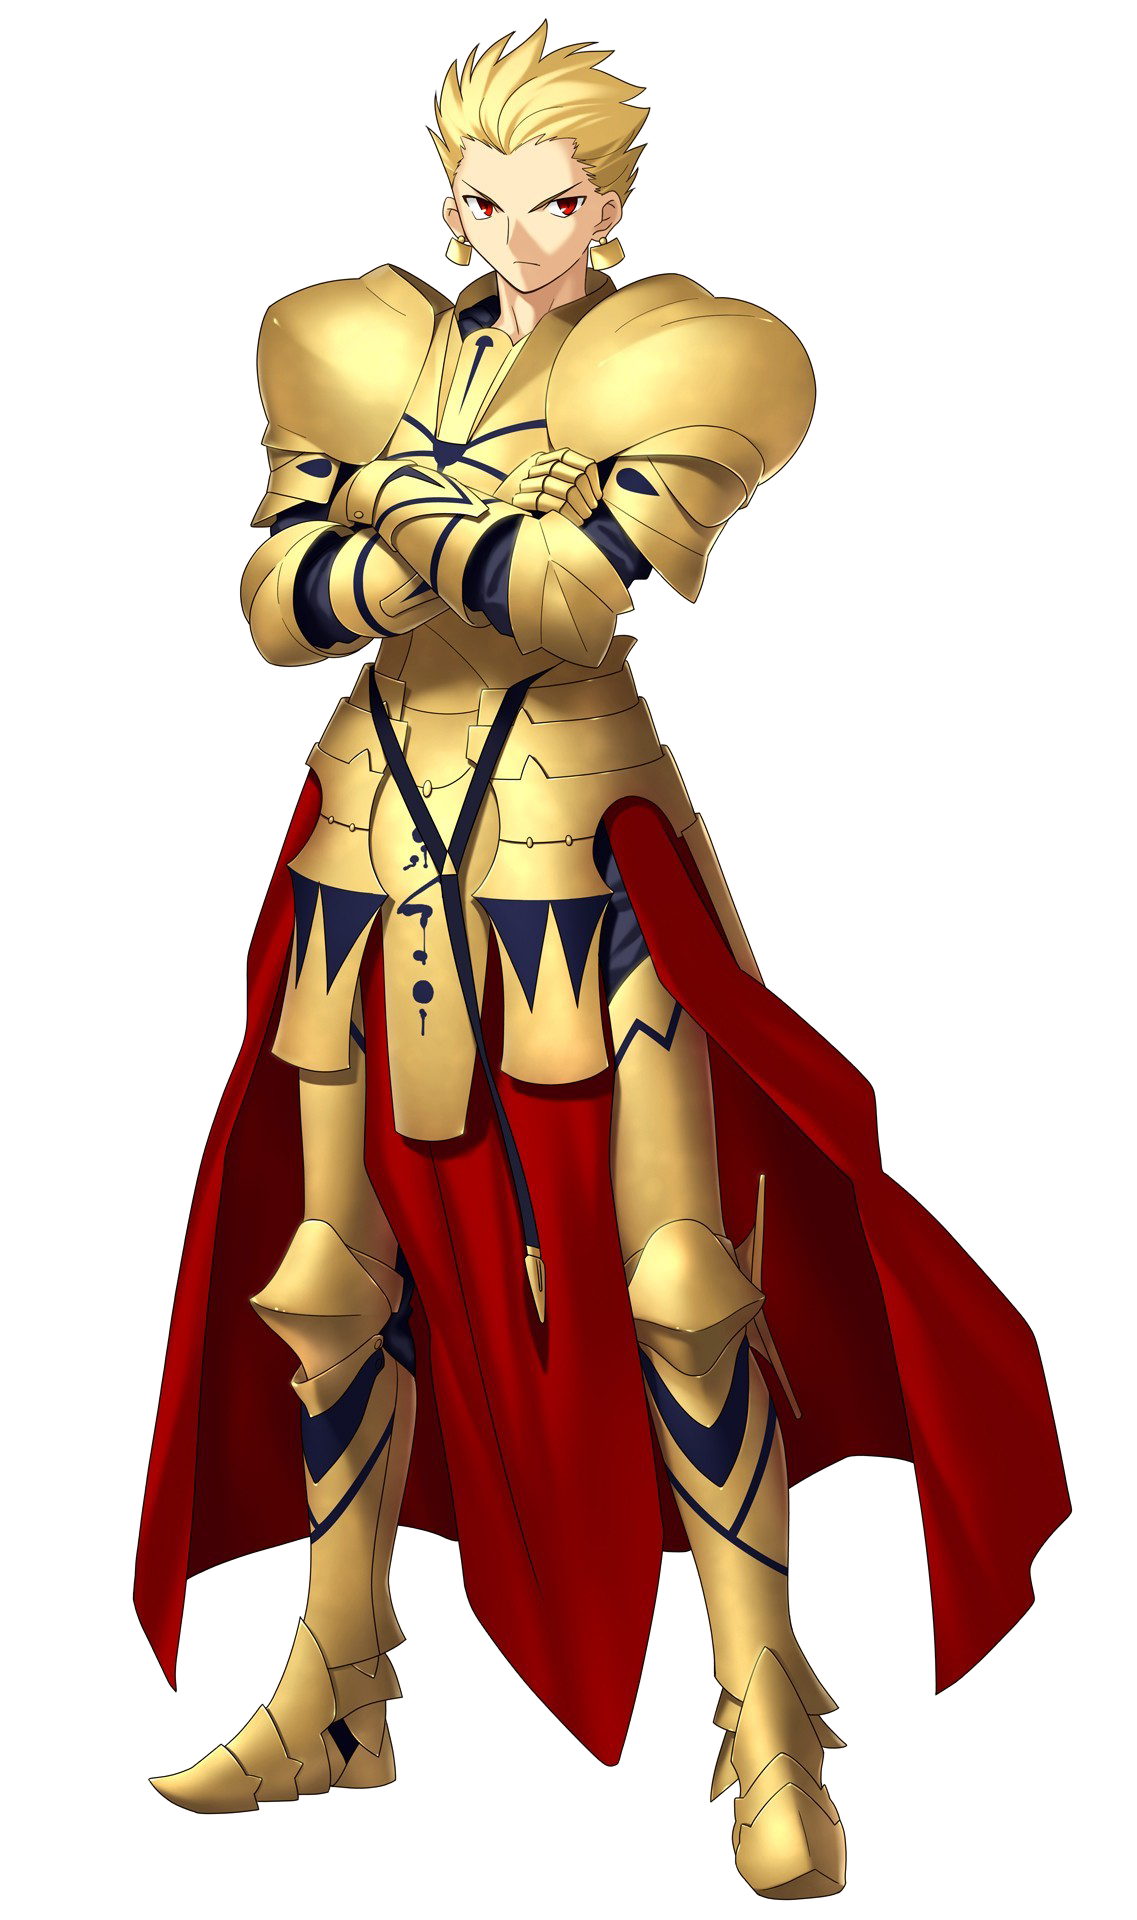 http://images.wikia.com/typemoon/images/e/ea/GilgameshUC.png